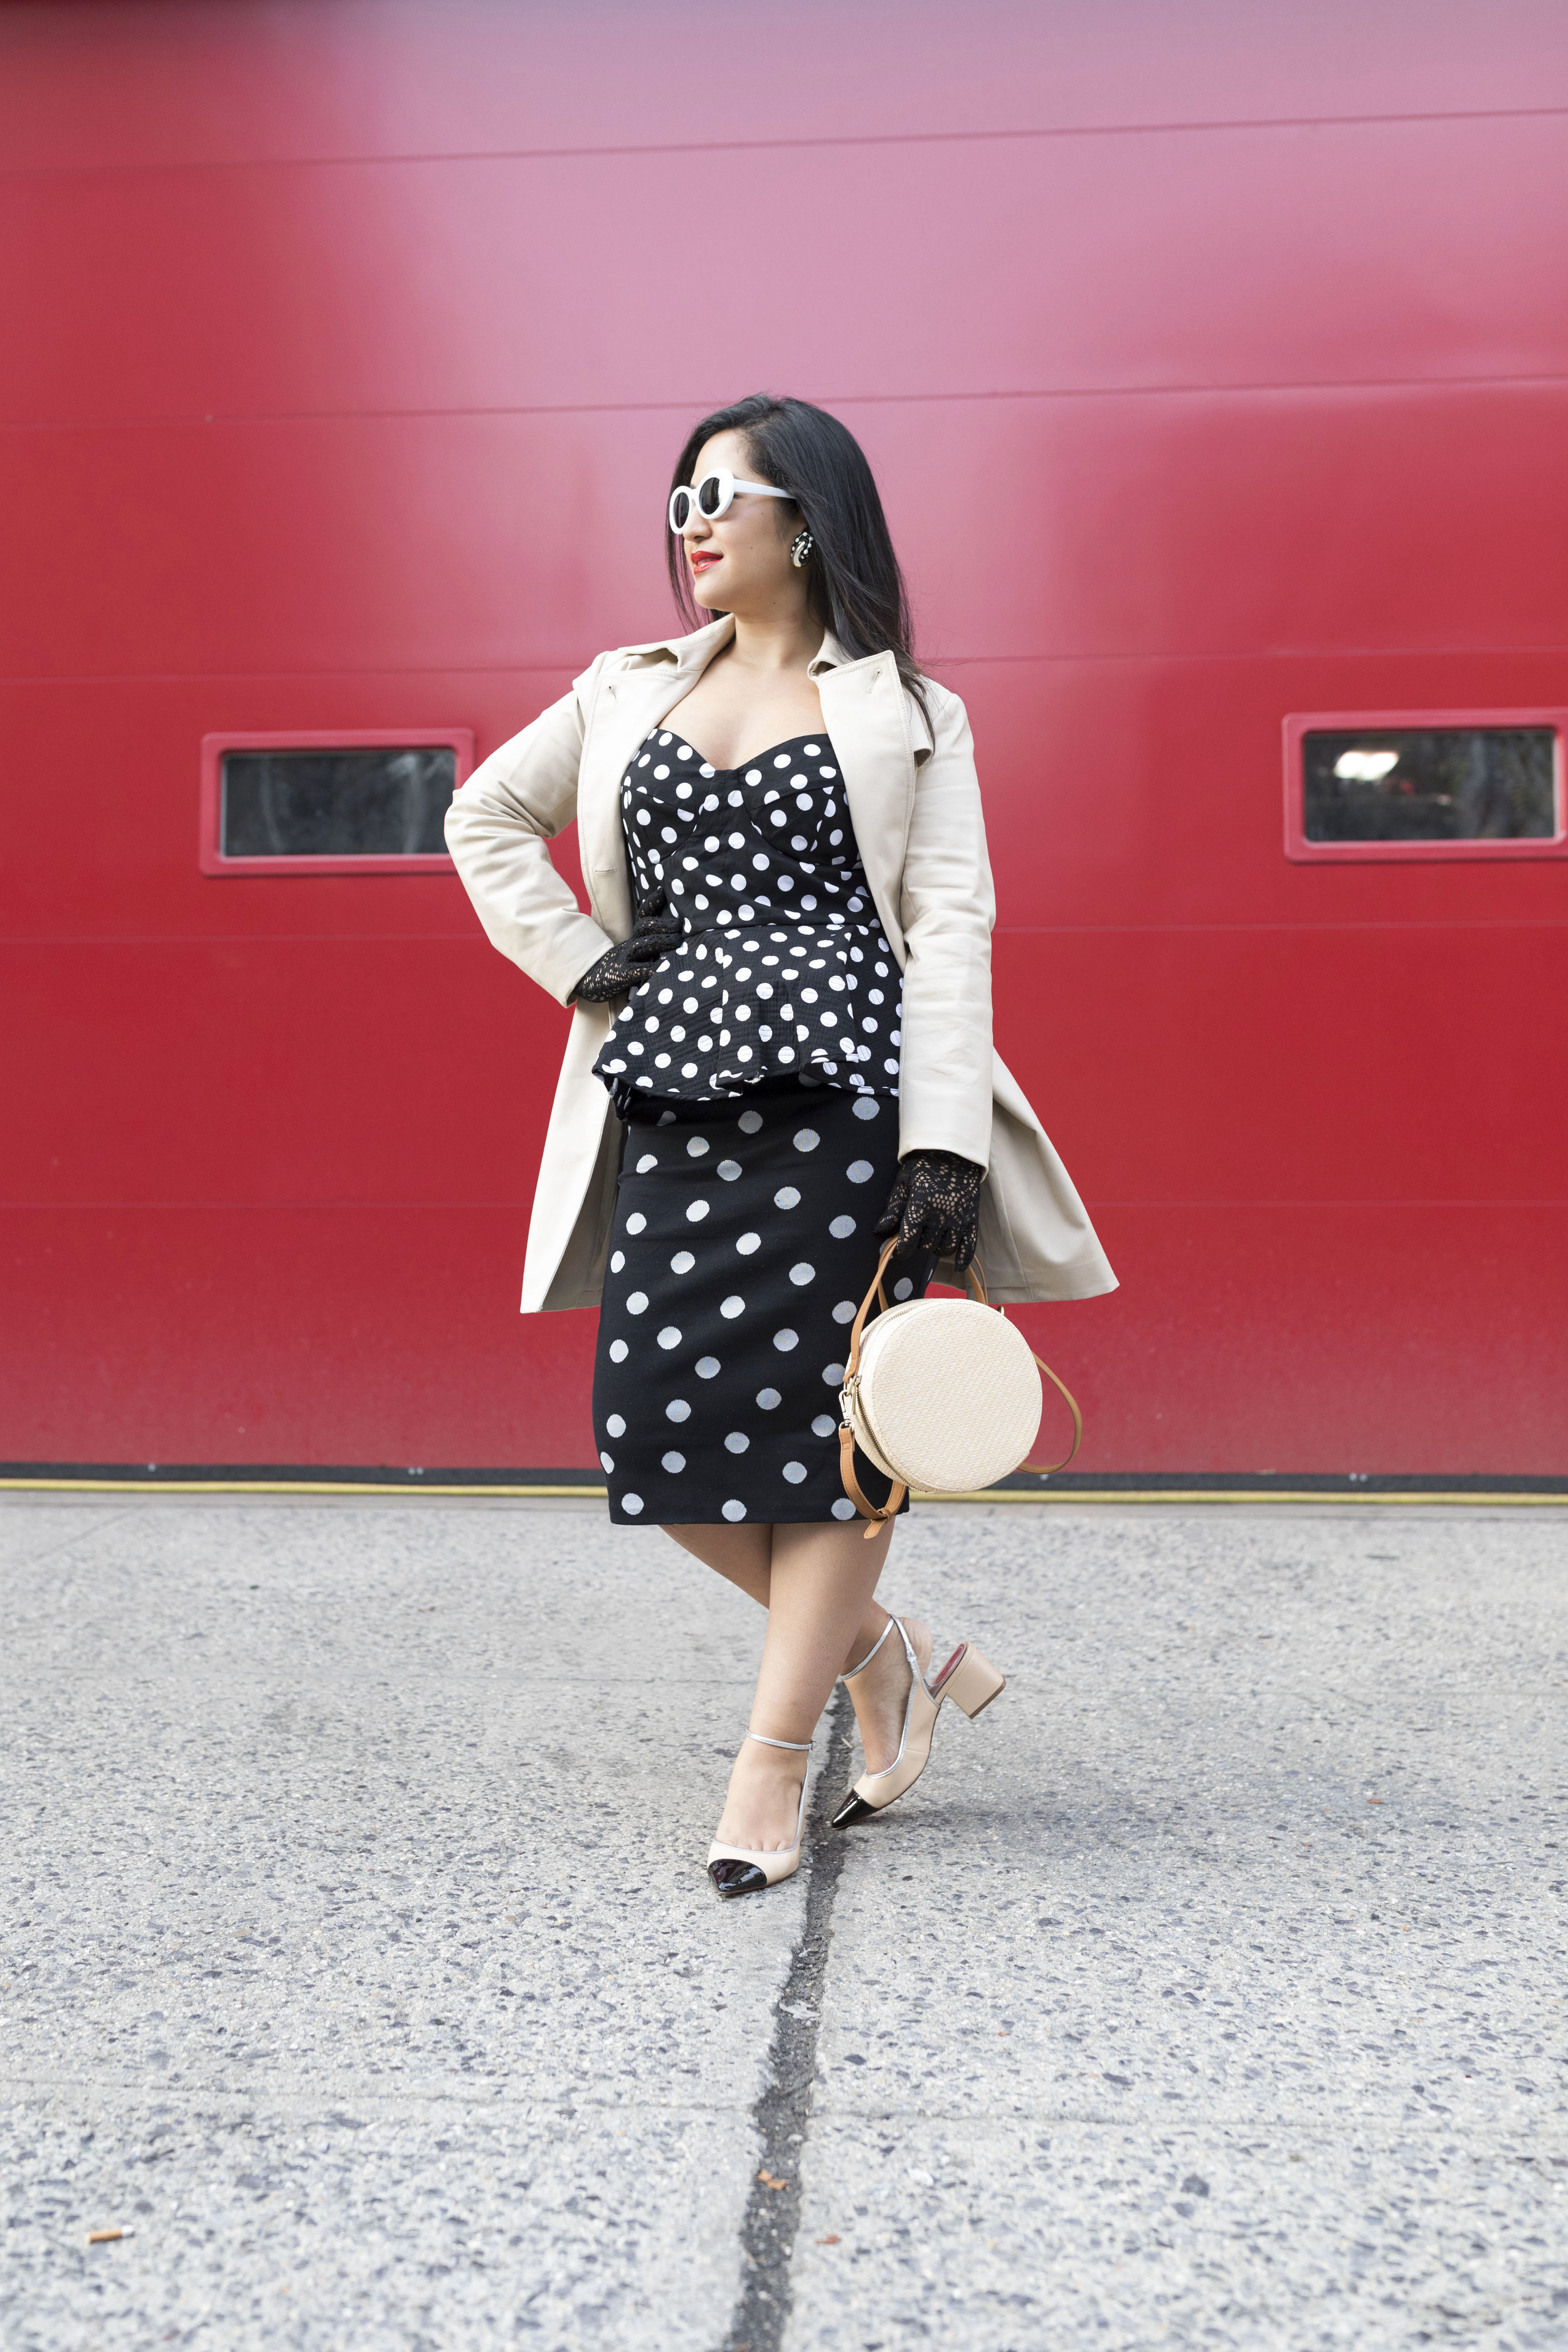 Krity S x Polka Dots x Spring Outfit8.jpg